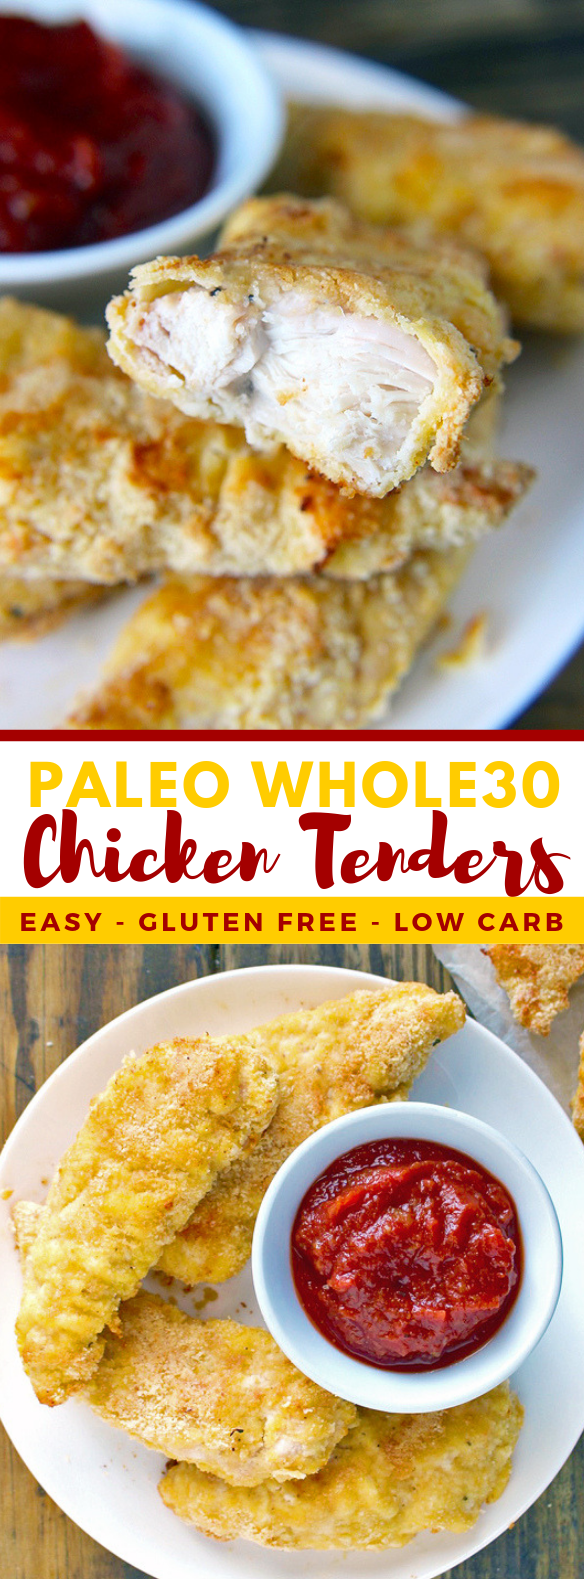 PALEO WHOLE30 CHICKEN TENDERS #diet #lowcarb